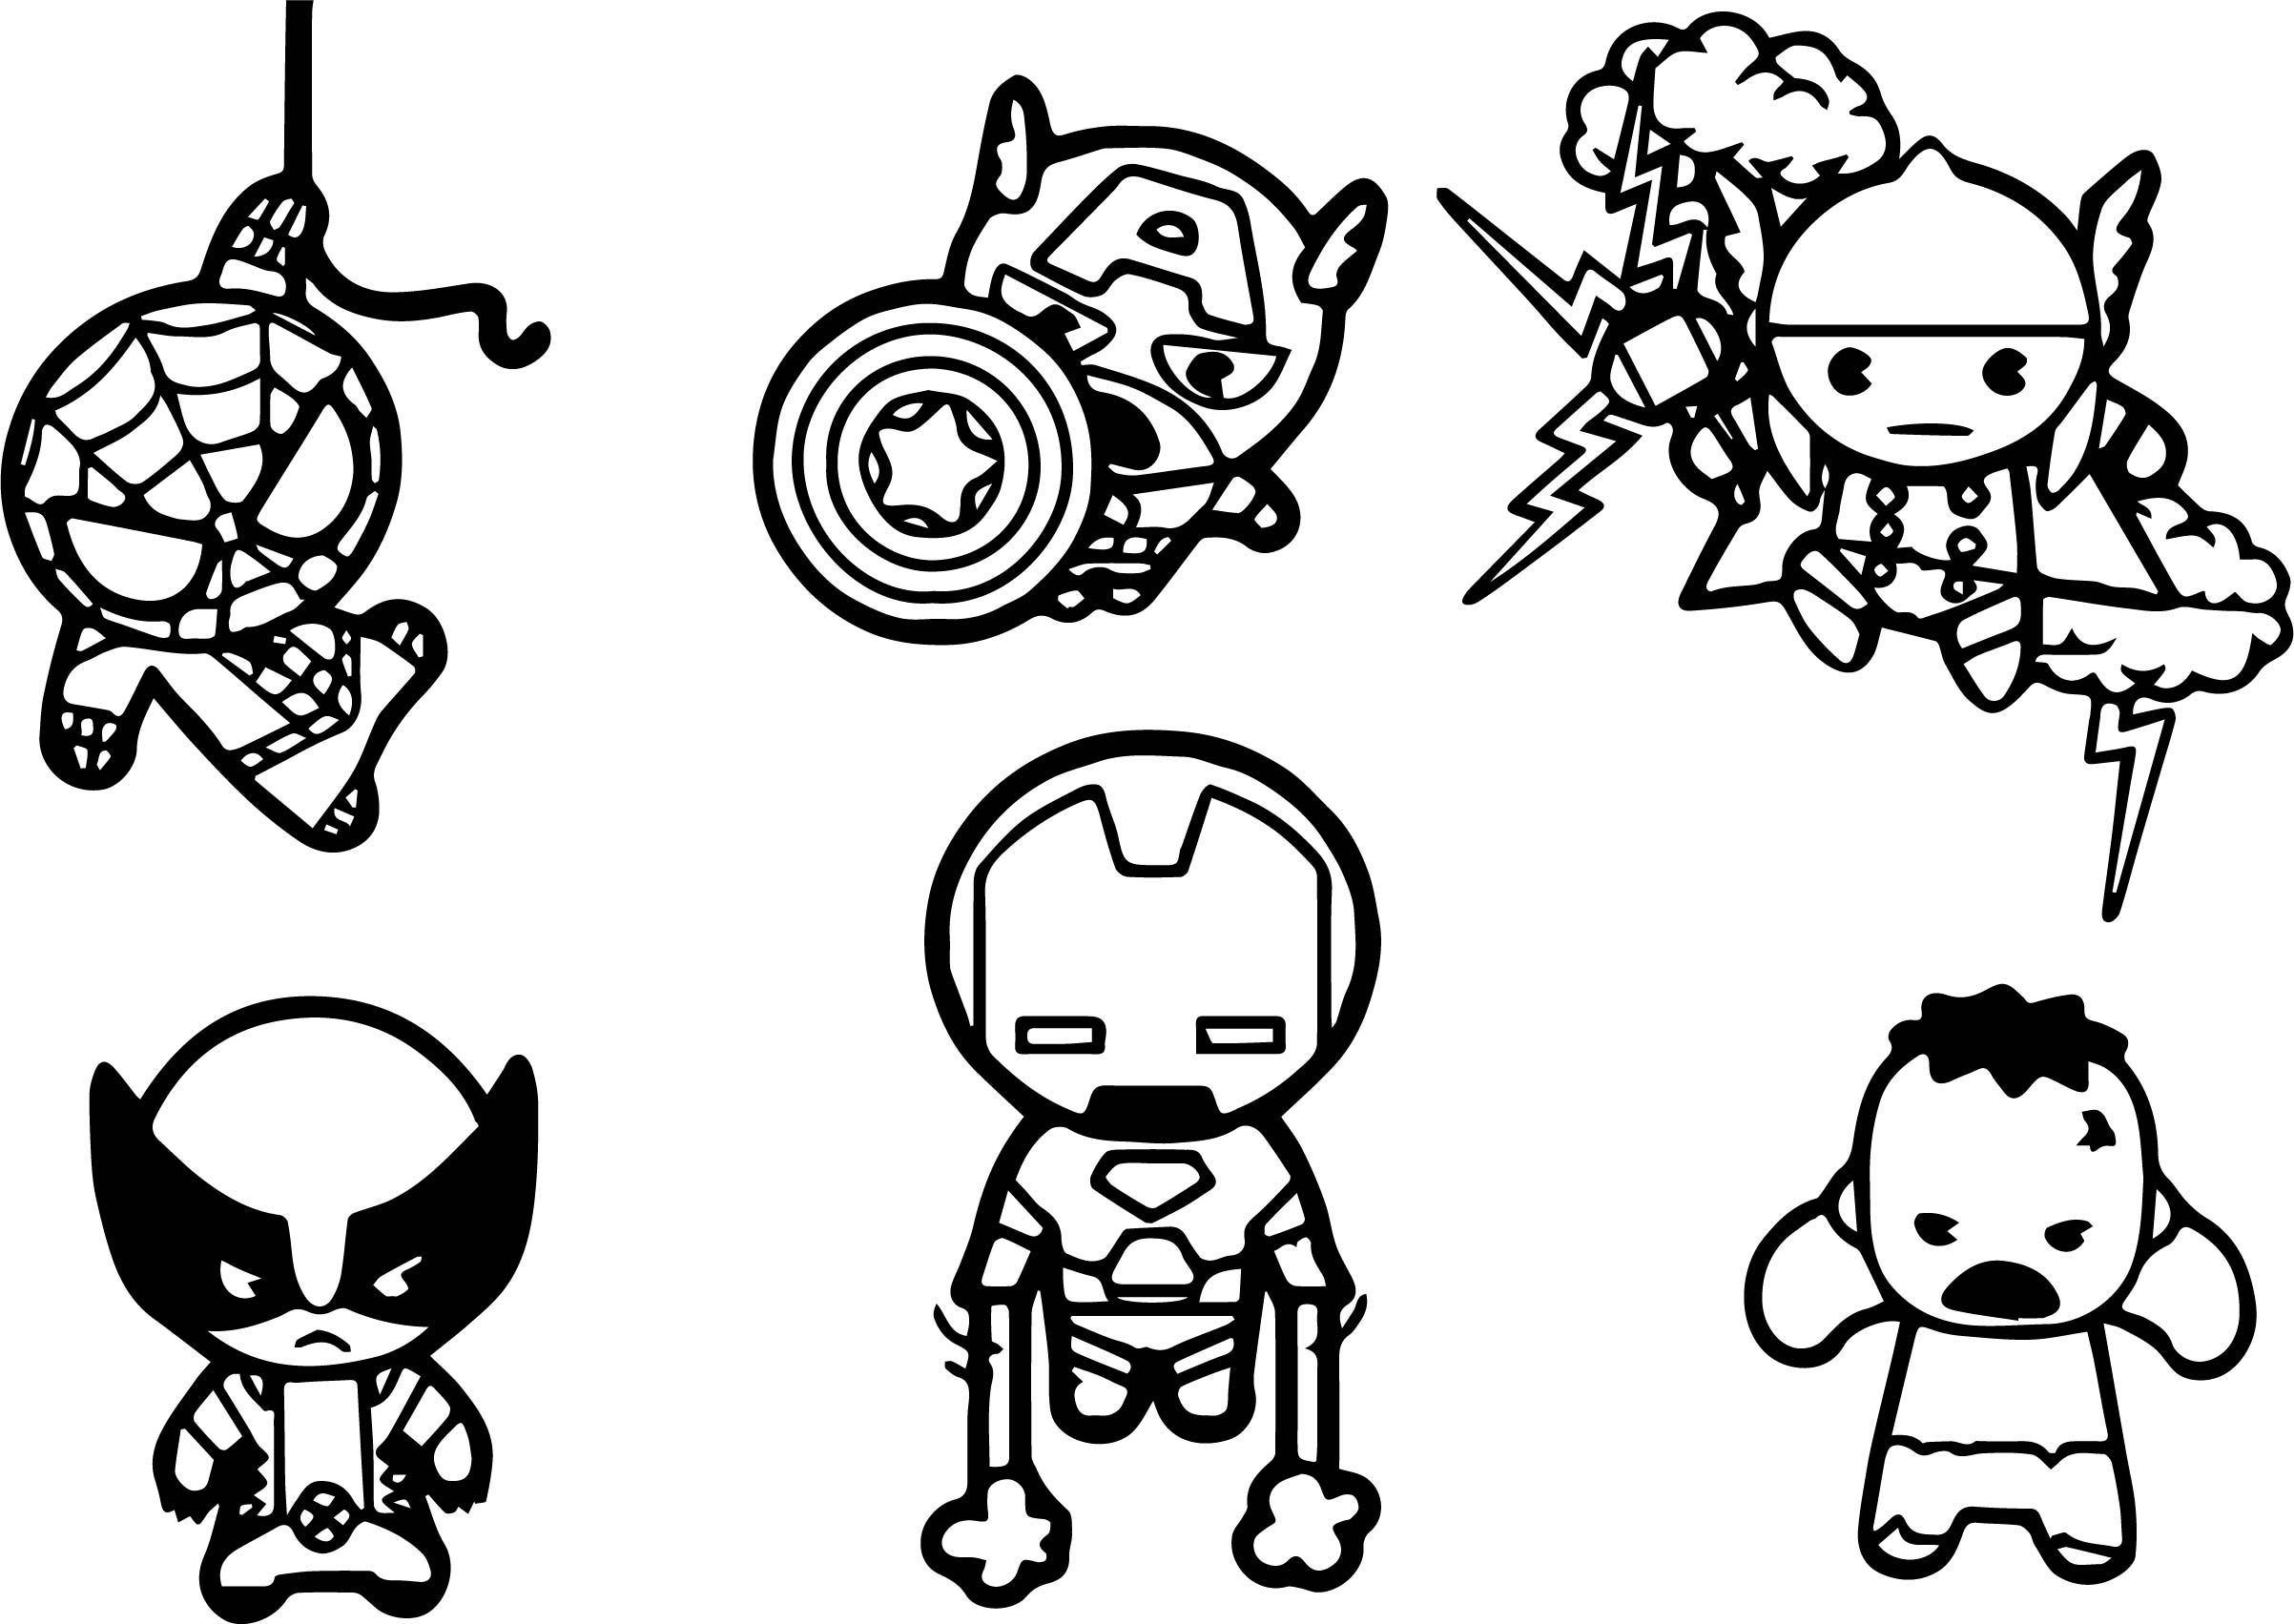 baby avengers coloring pages baby avengers coloring pages print coloring 2019 pages avengers baby coloring